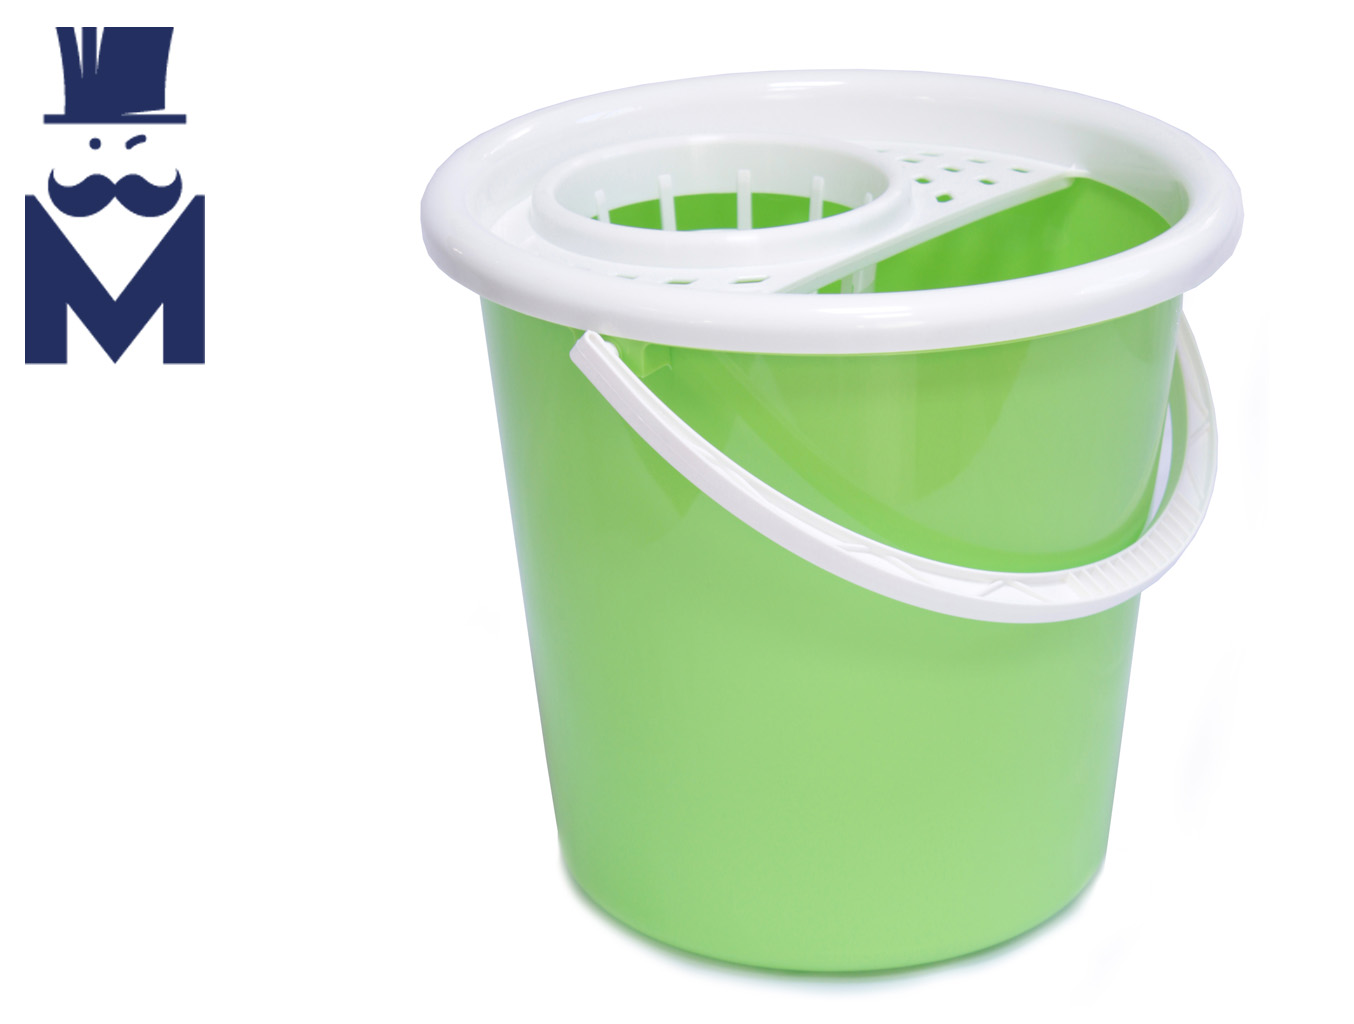 /en/products/catalog/category/22-plastics-product.html